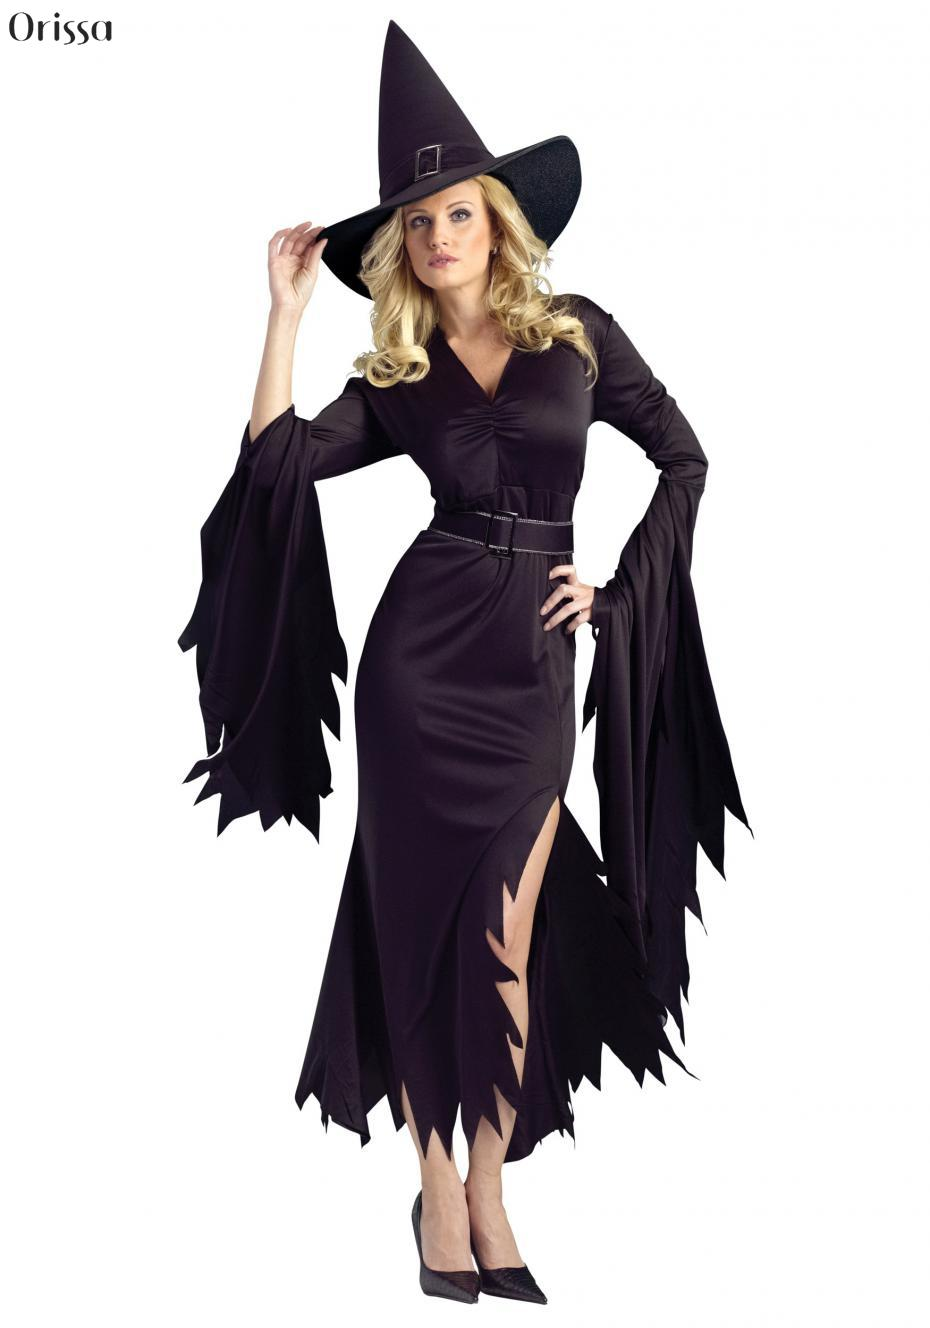 Compare Prices on Wicked Witch Costumes- Online Shopping/Buy Low ...